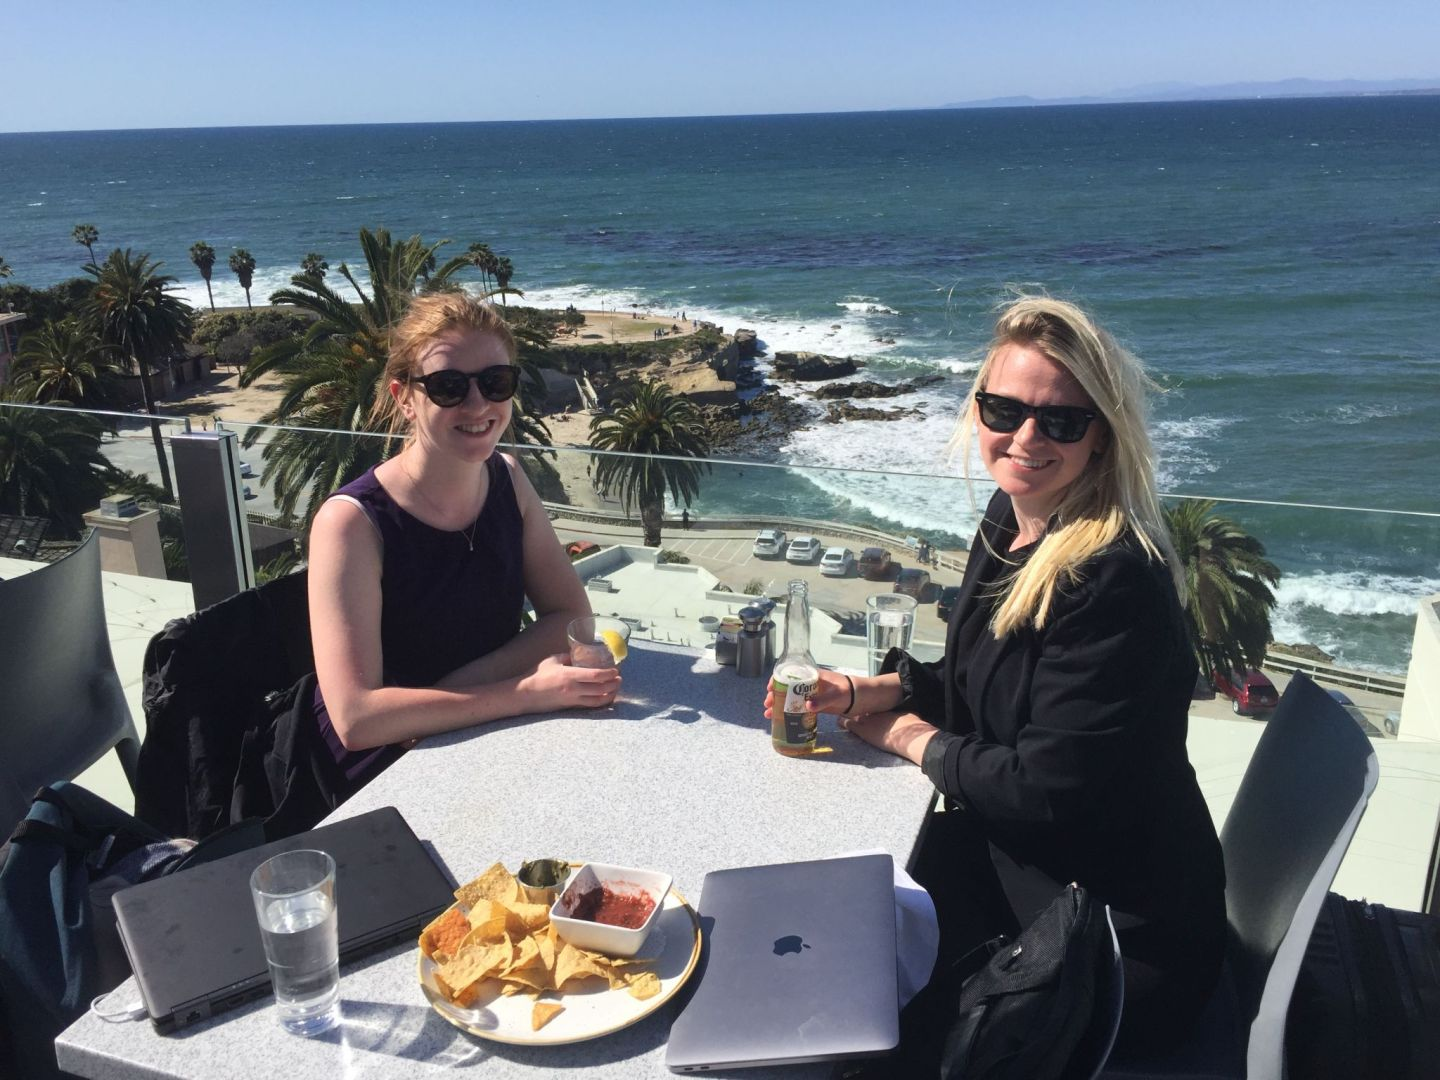 Fish tacos with a view at George's at the Cove, La Jolla, San Diego